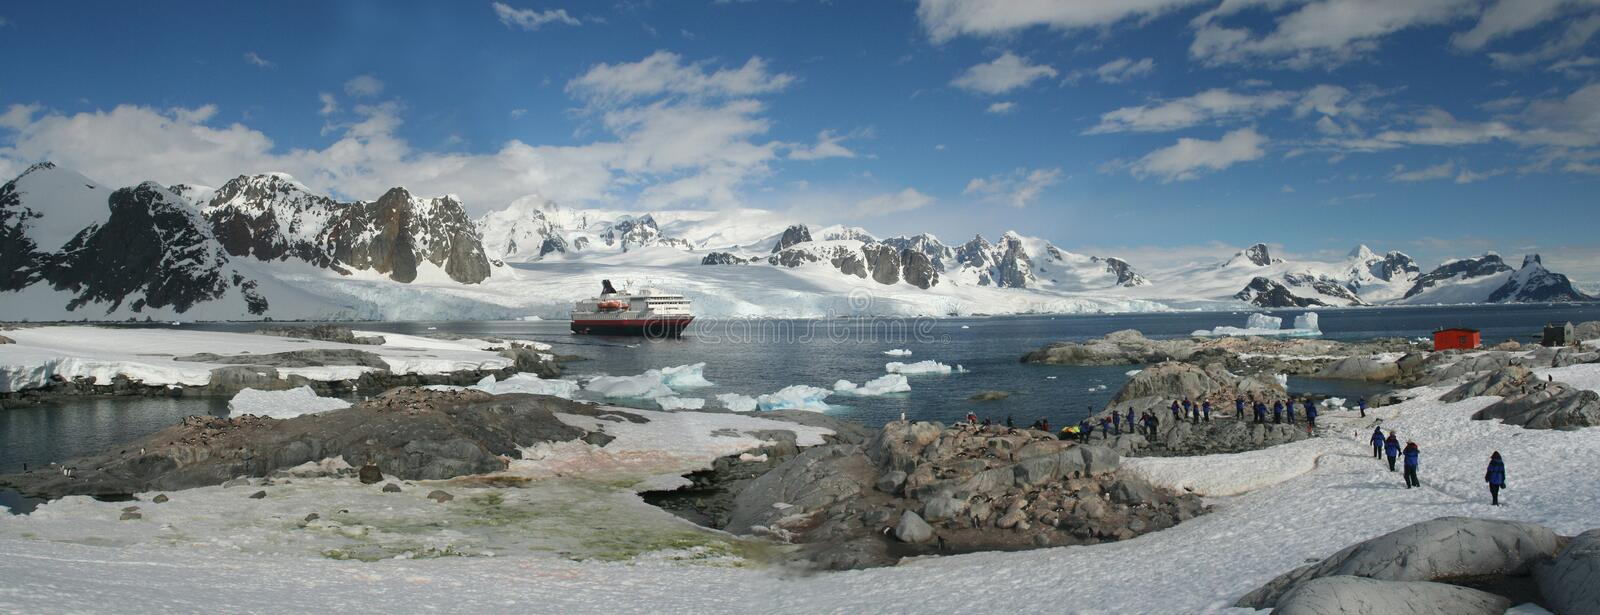 Panorama - penguin colonies, cruise ship & tourists stock photography